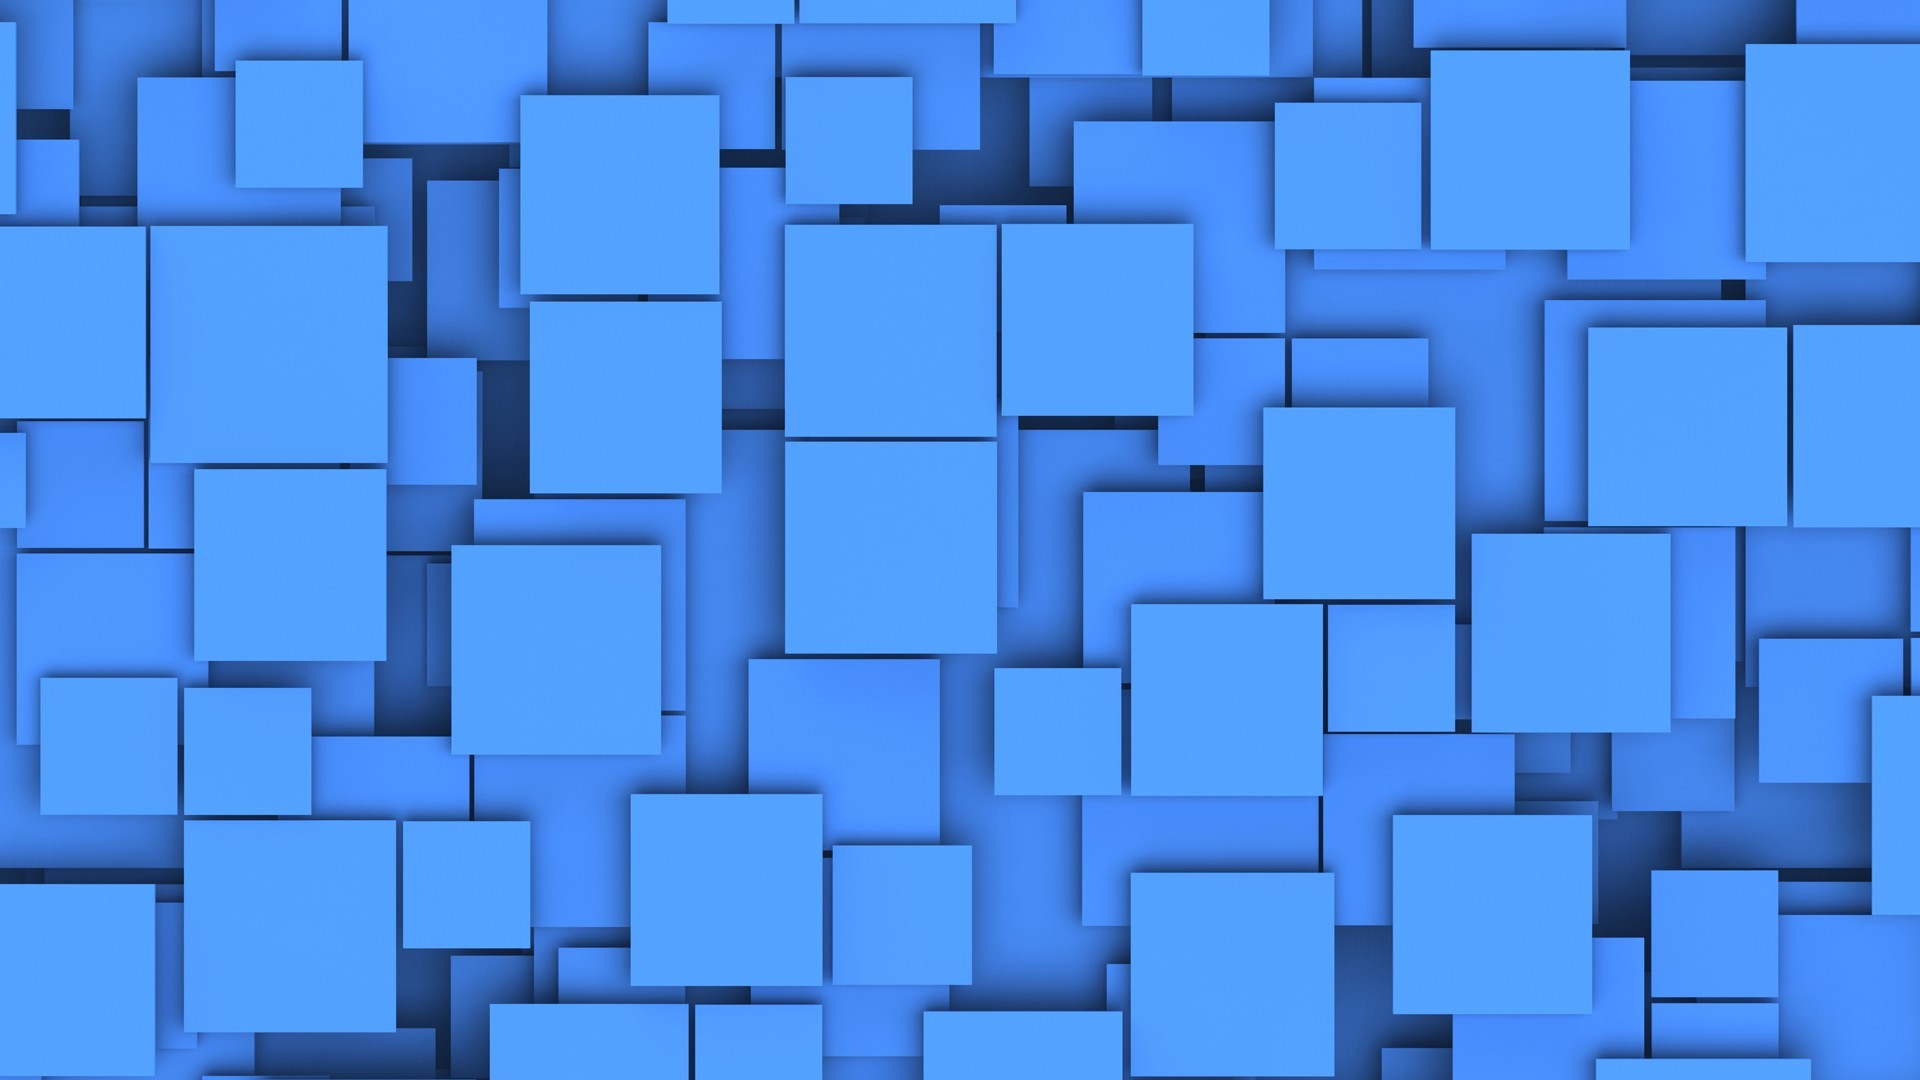 minimalism-wall-symmetry-blue-pattern-texture-square-circle-Toy-maze-ART-color-shape-design-line-facade-number-screenshot-1920x1080-px-font-outdoor-structure-555040